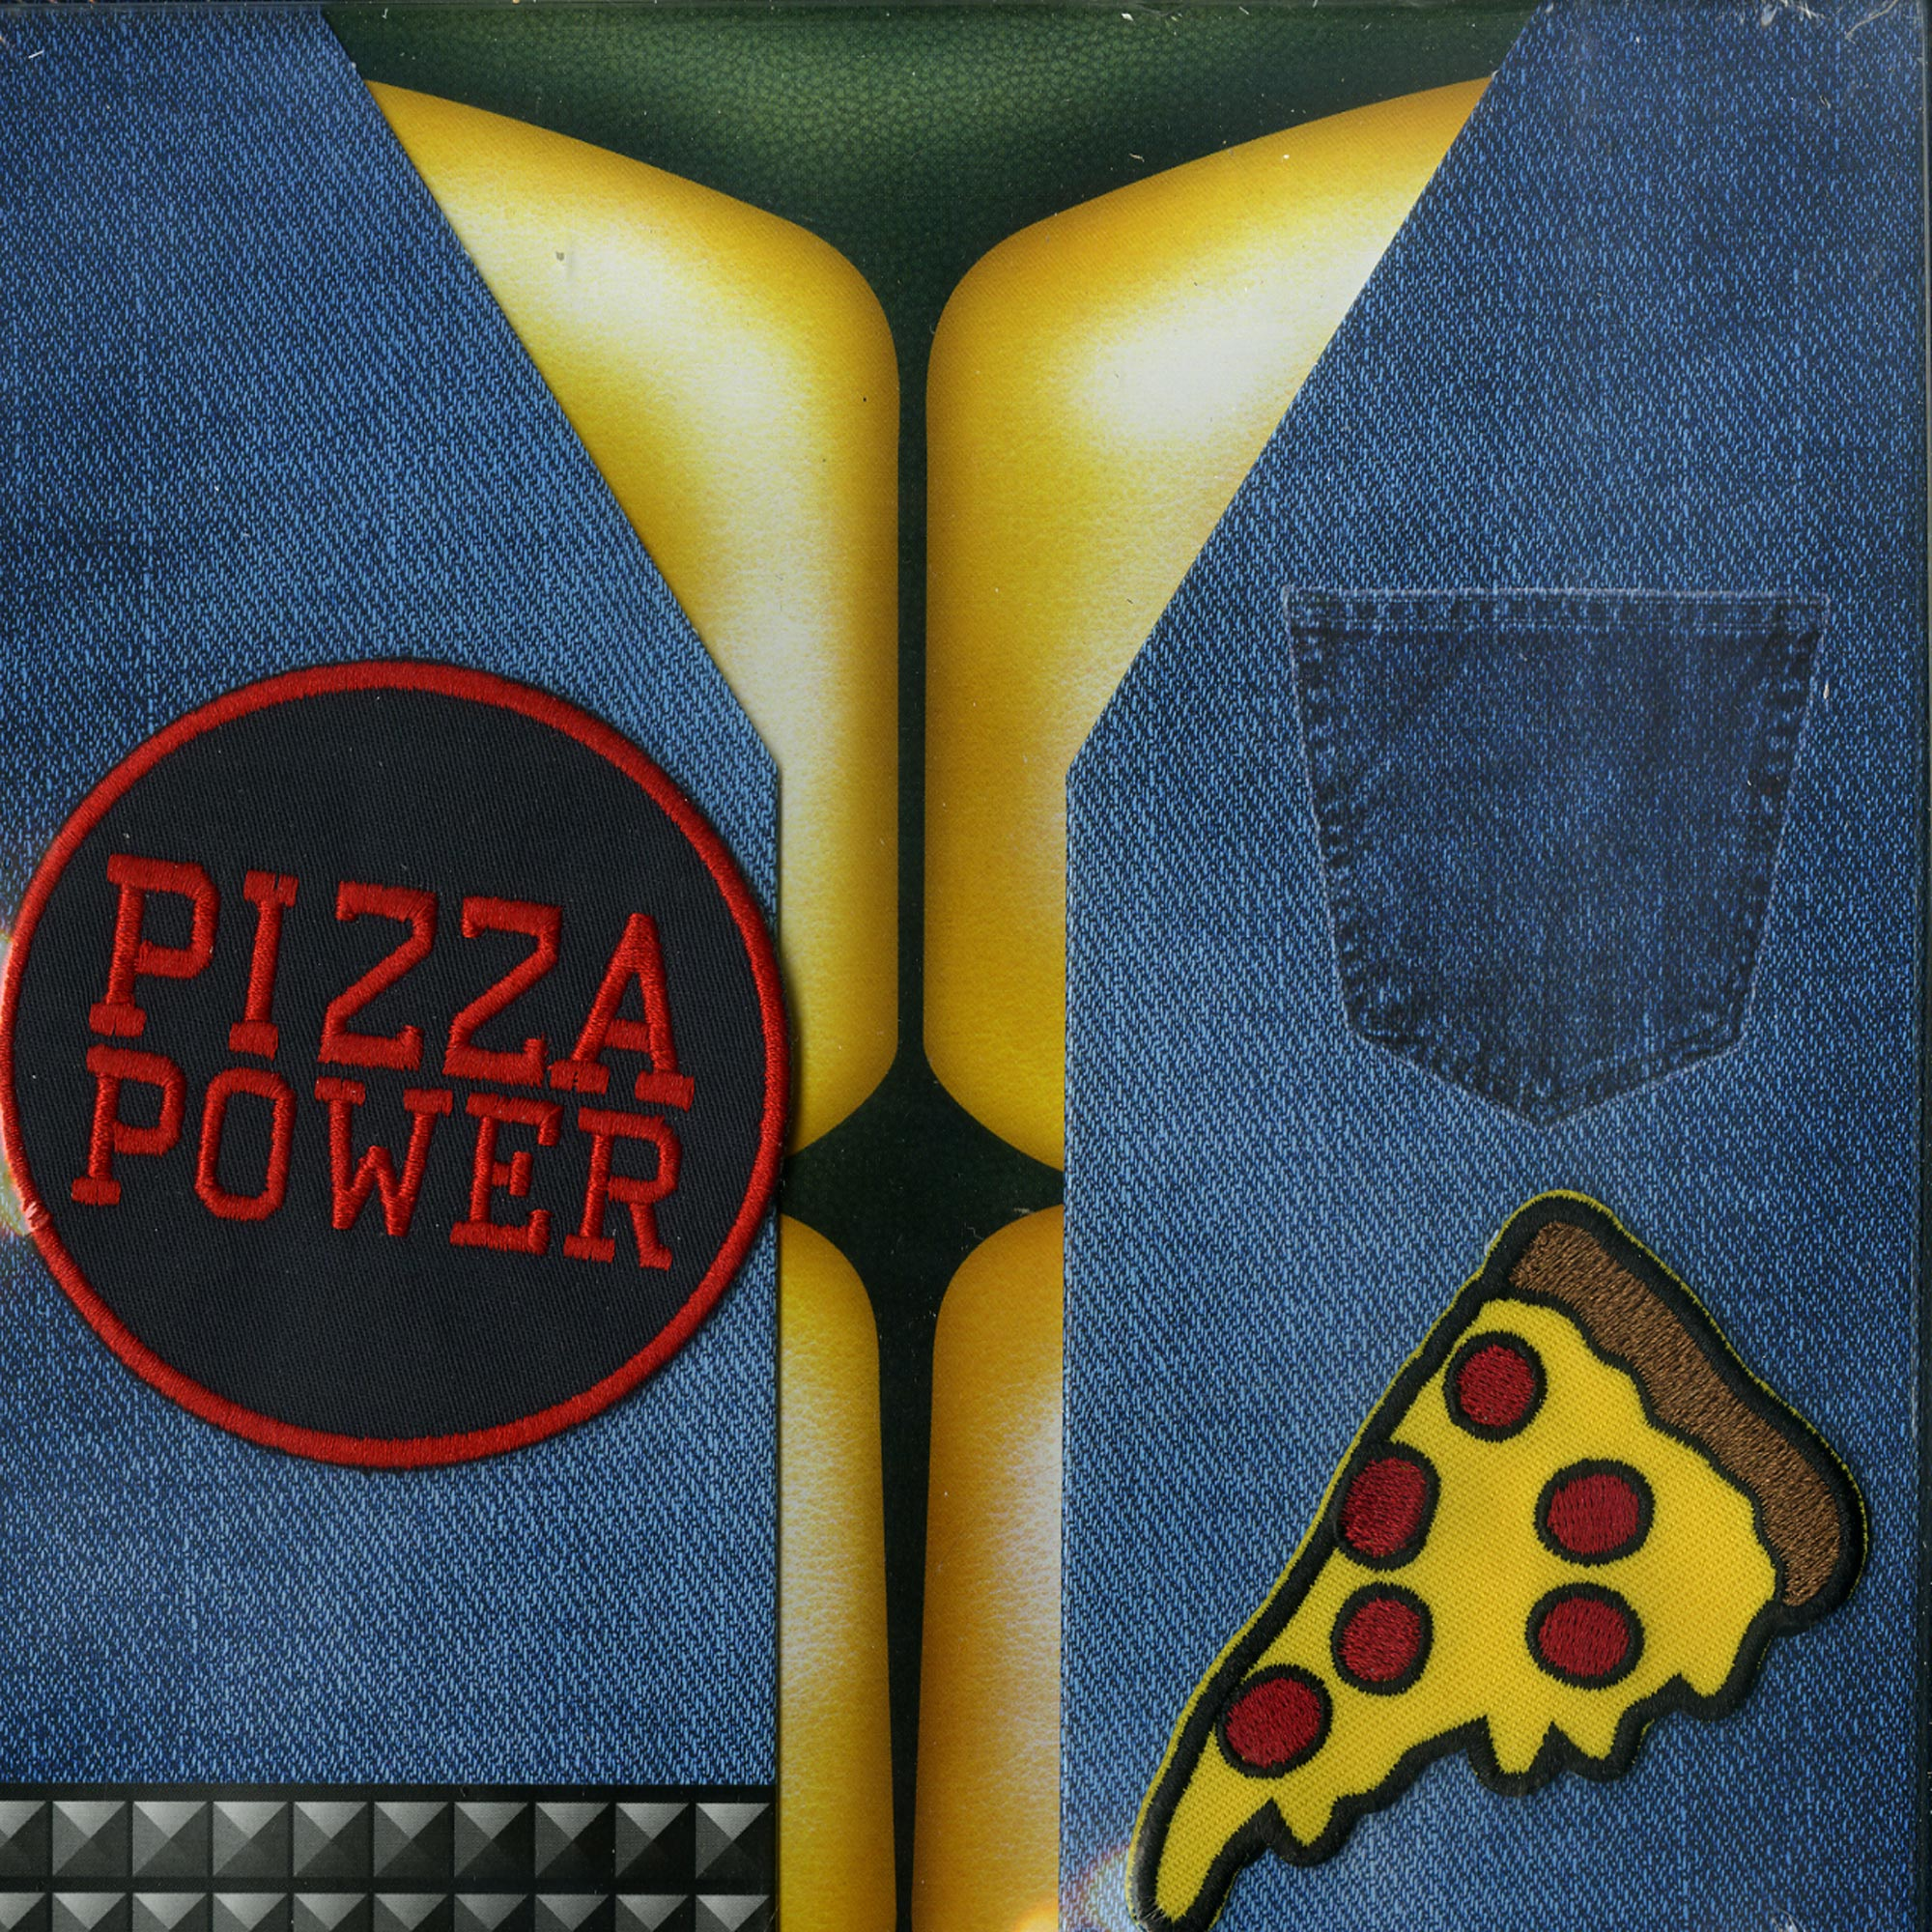 Teenage Mutant Ninja Turtles - PIZZA POWER